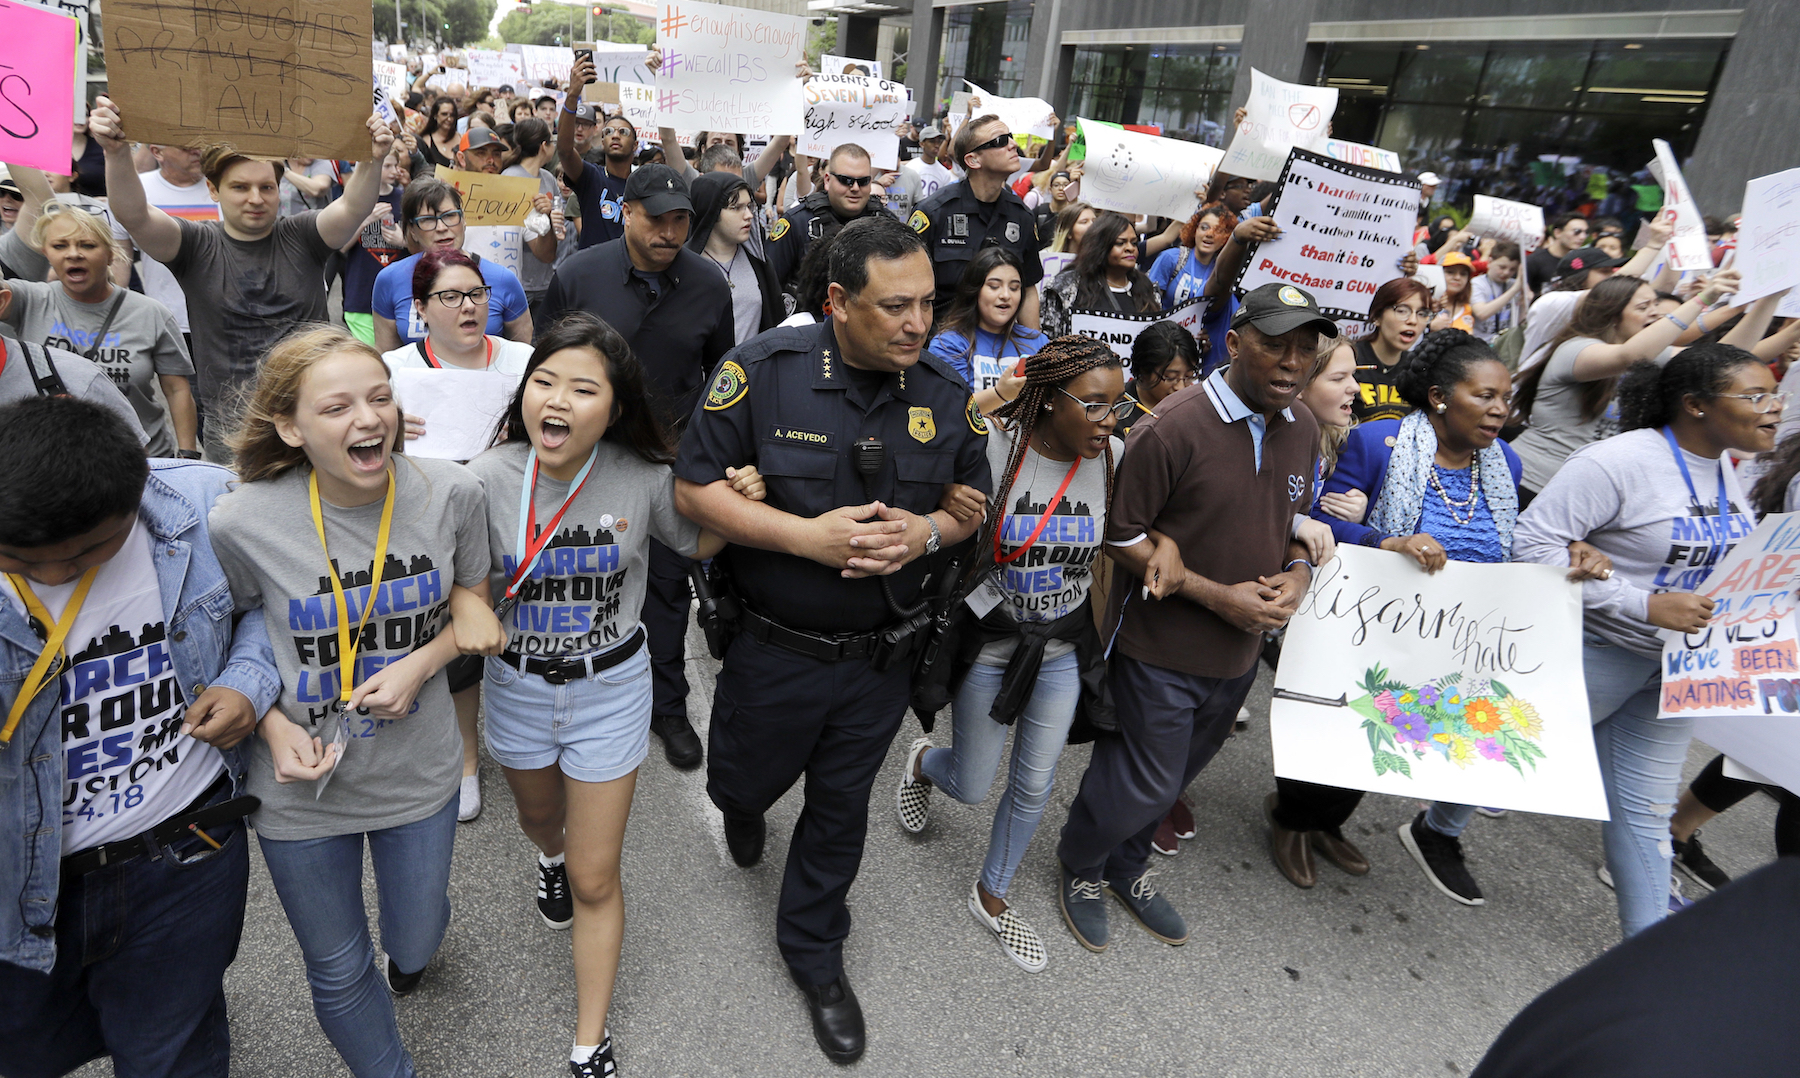 <div class='meta'><div class='origin-logo' data-origin='AP'></div><span class='caption-text' data-credit='AP Photo/David J. Phillip'>Houston Police Chief Art Acevedo, Houston Mayor Sylvester Turner, and Rep. Sheila Jackson Lee, D-Texas, join demonstrators during a March for Our Lives protest in Houston.</span></div>